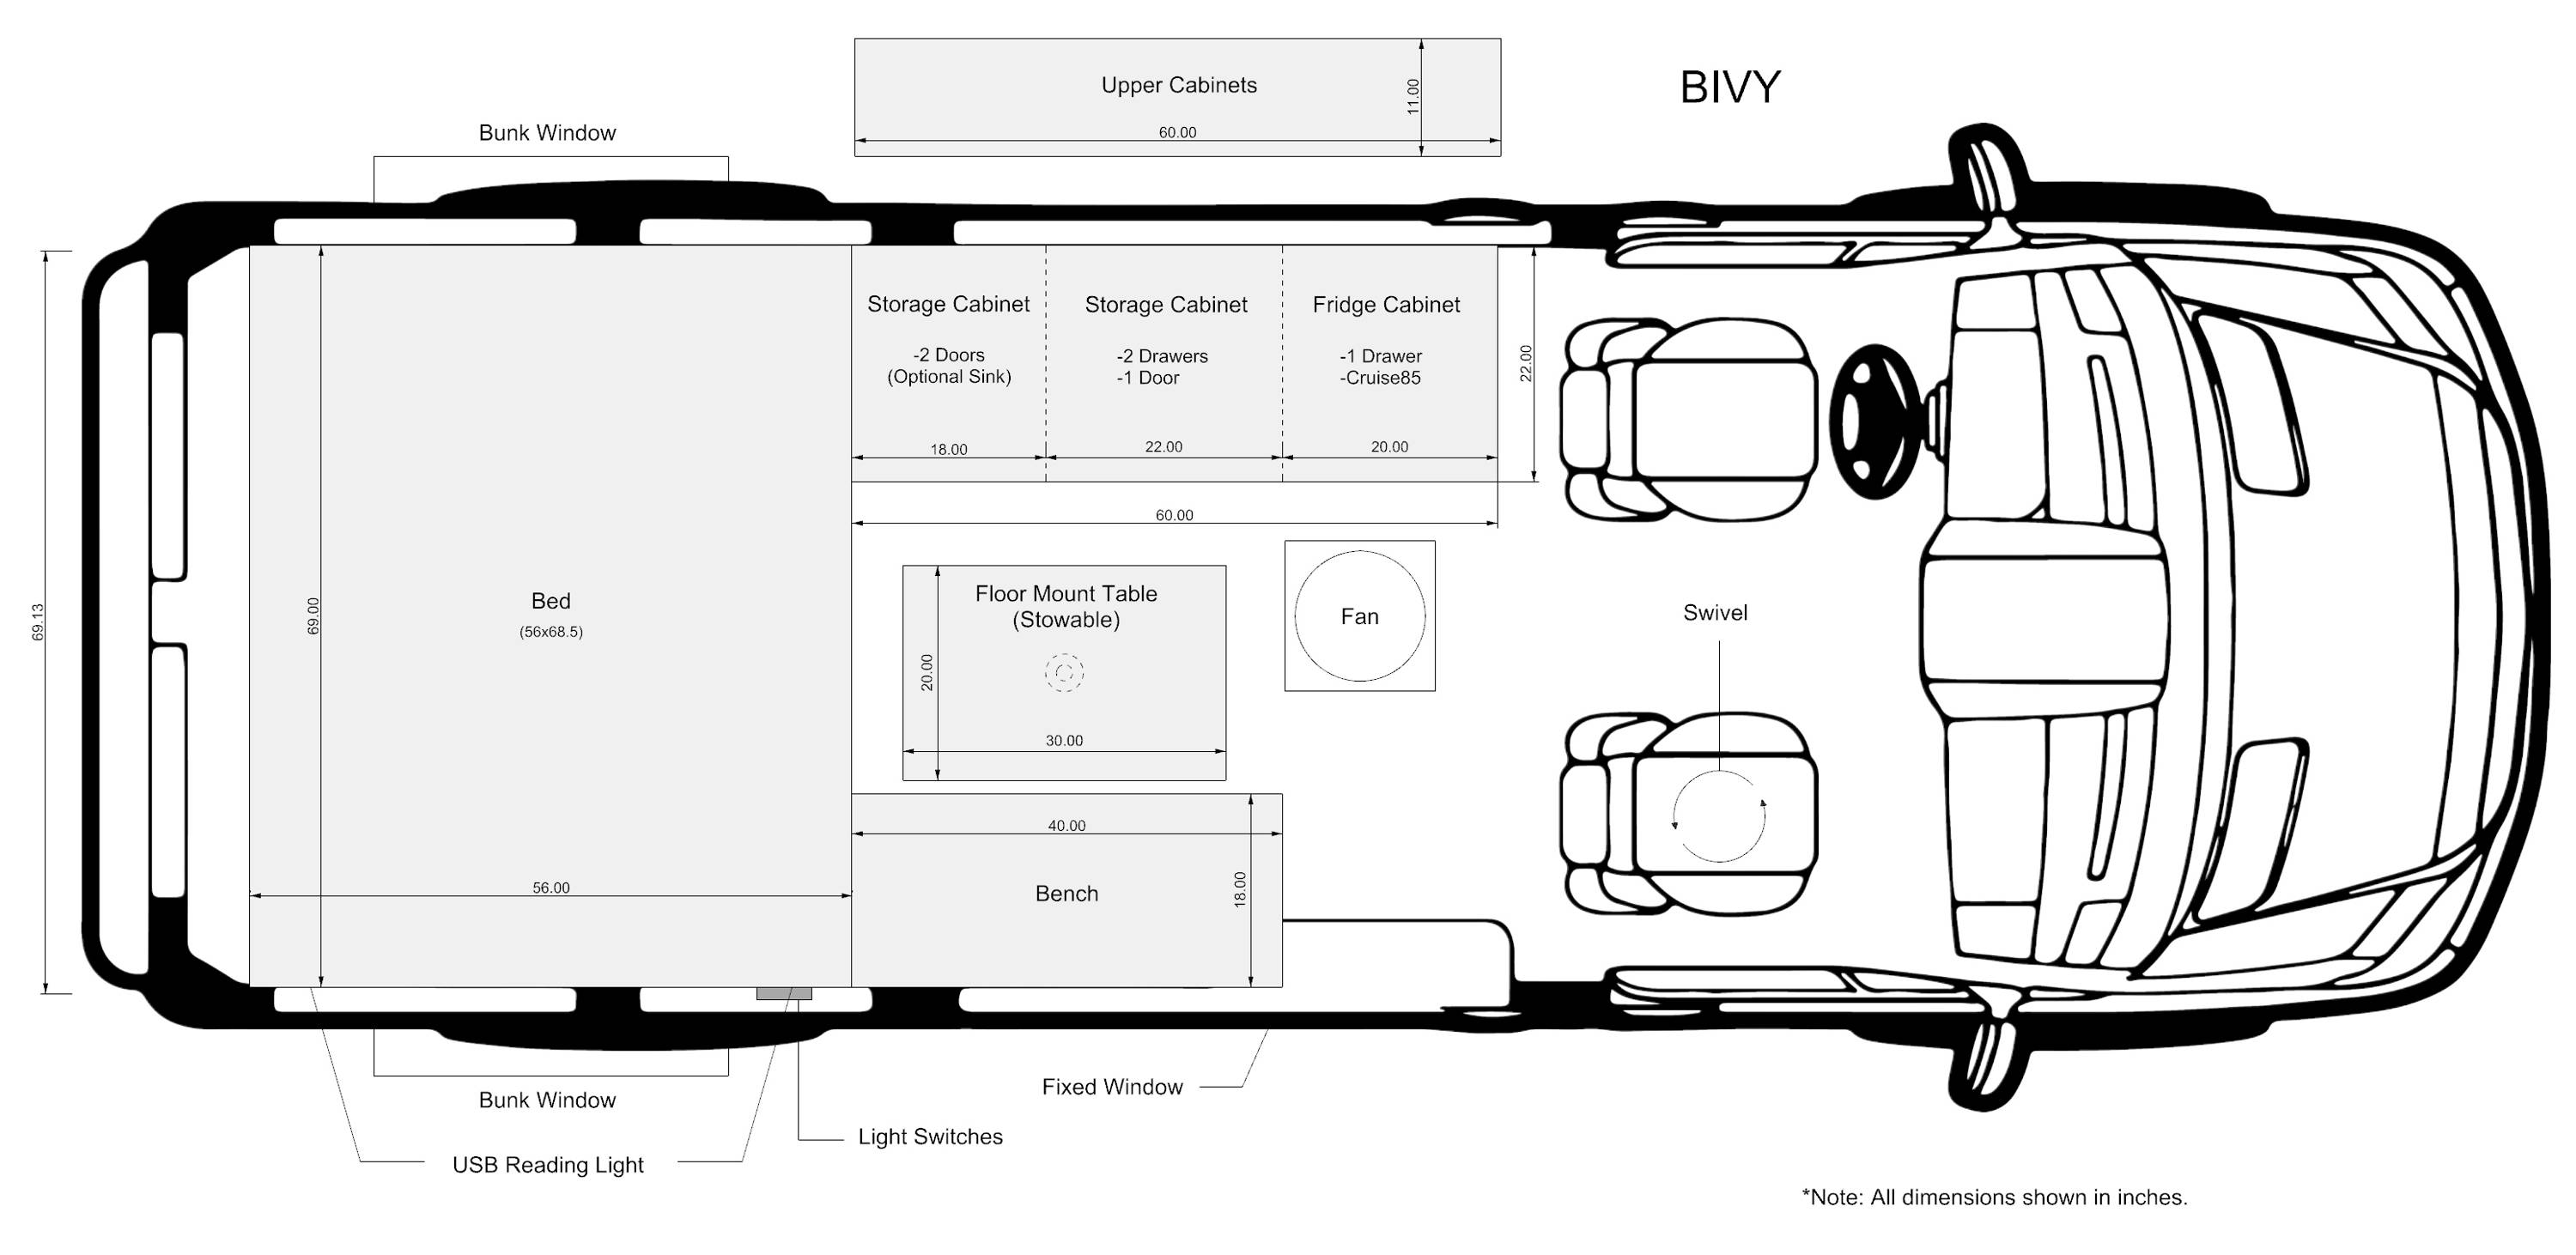 The Bivy+ - Sprinter 144 / ProMaster 136 Van Conversion Floor Plan and Interior Layout with Refrigerator - The Vansmith